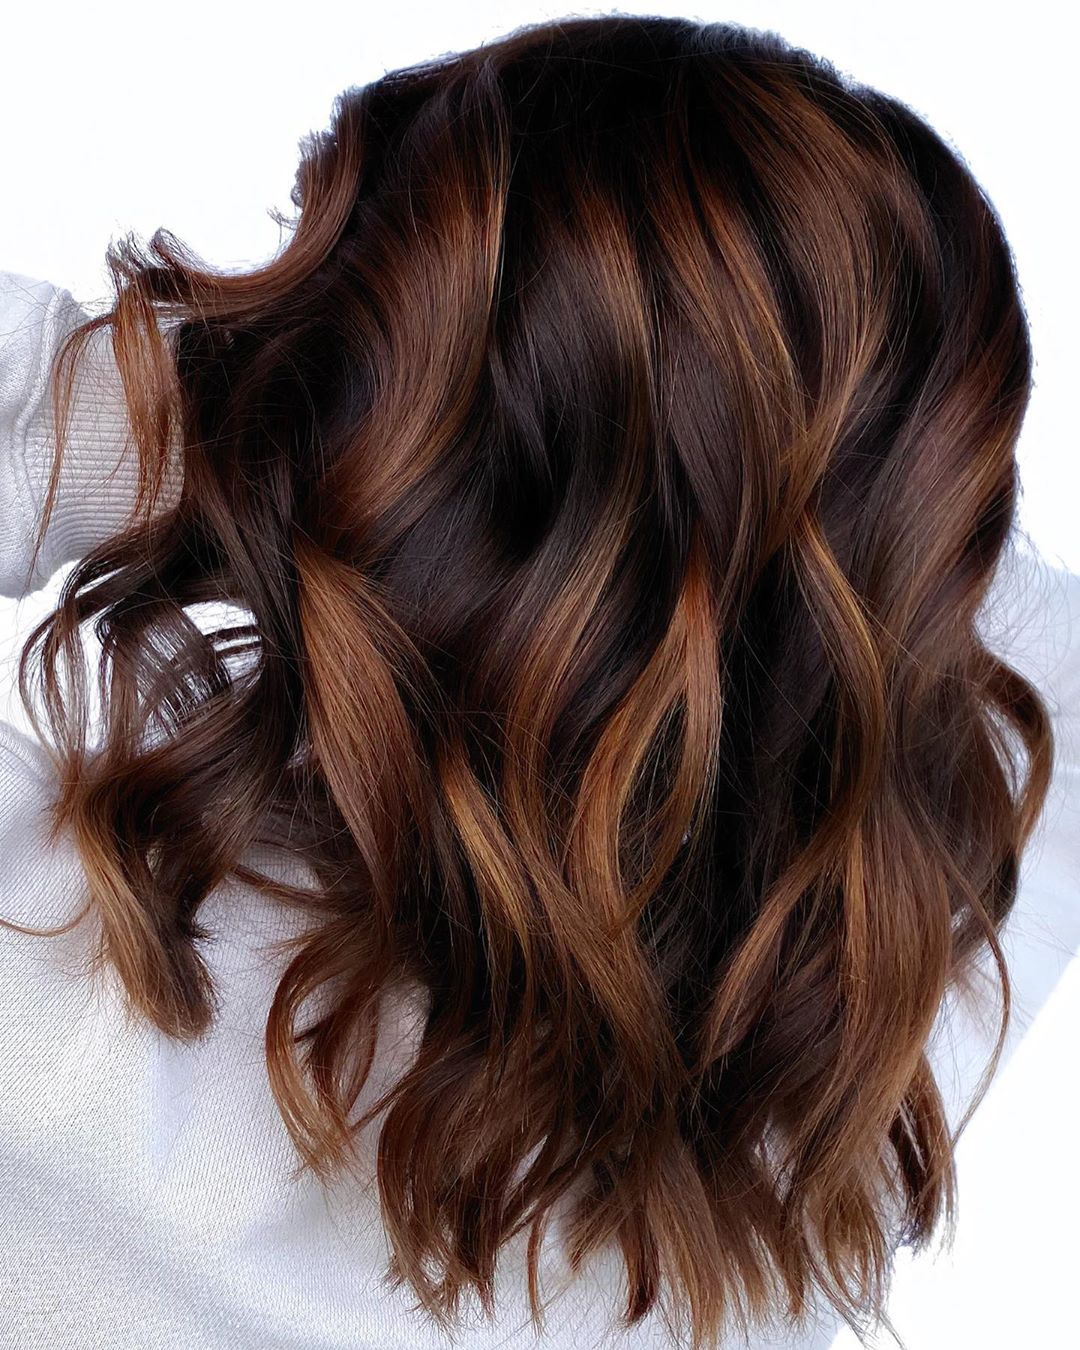 50 Best Hair Colors And Hair Color Trends For 2021 Hair Adviser